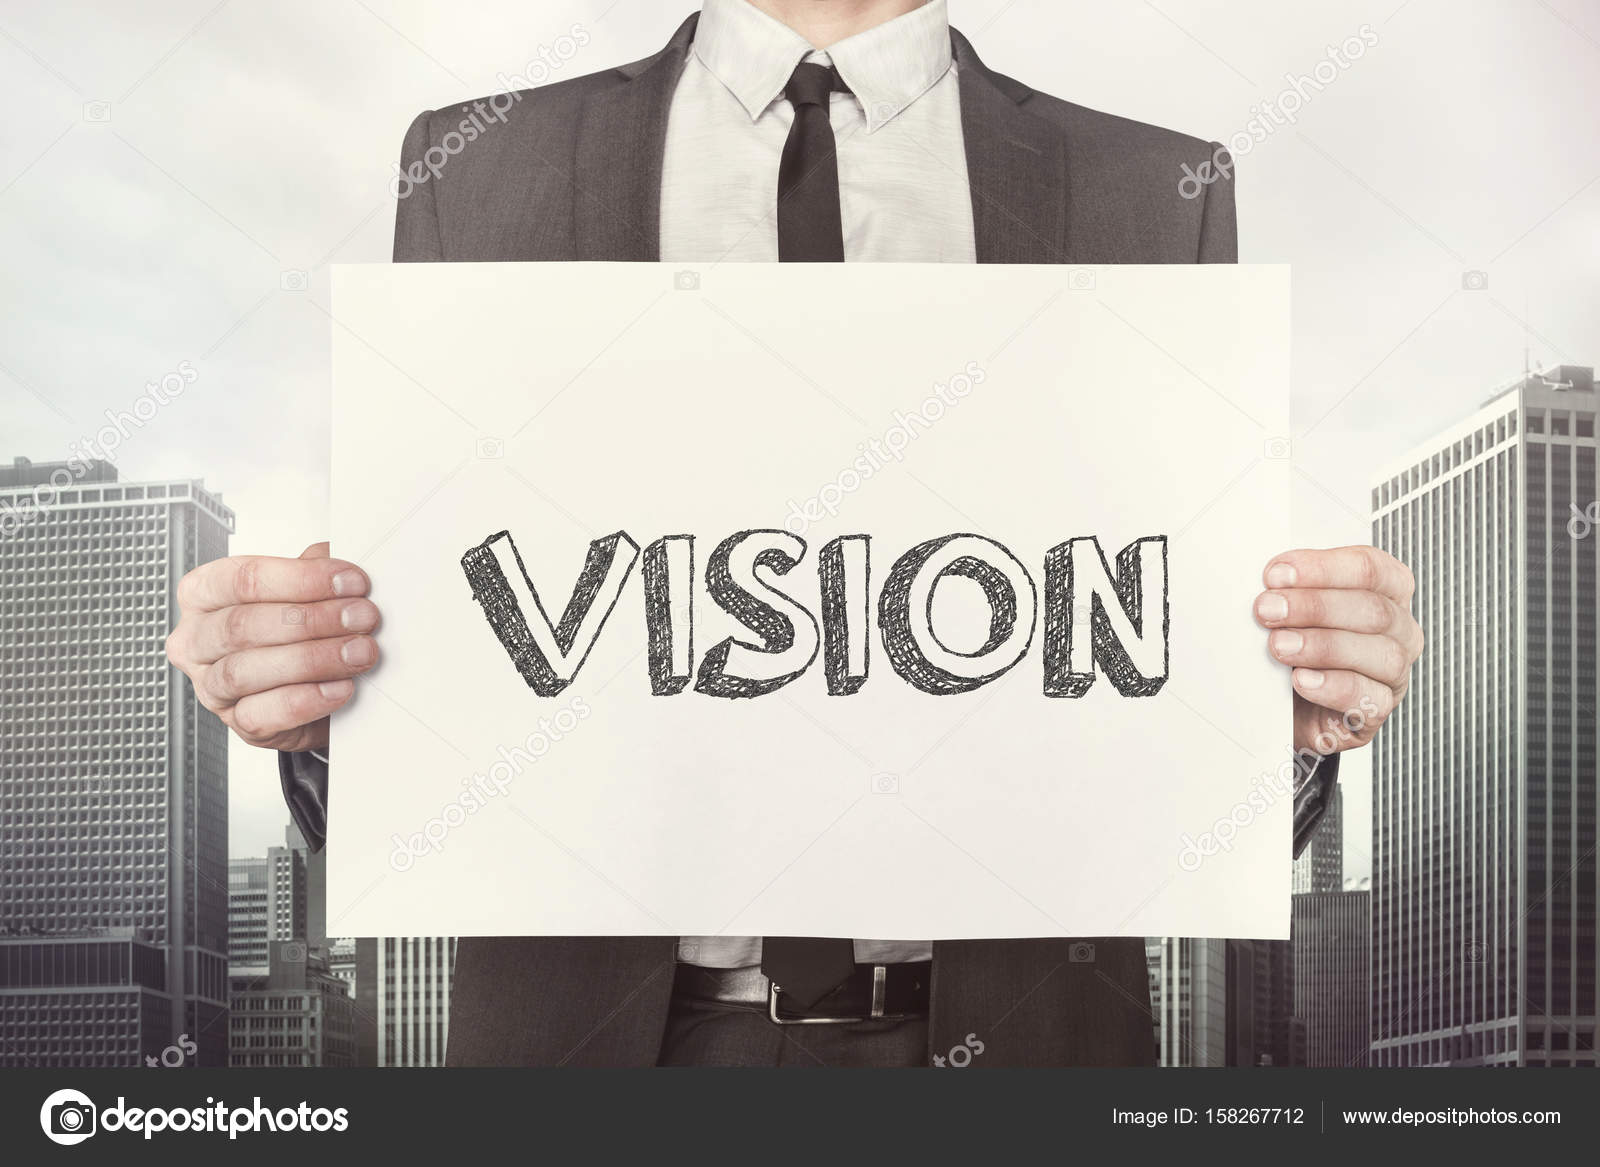 Placard Crossword Businessman Holding Vision Placard While Standing Against